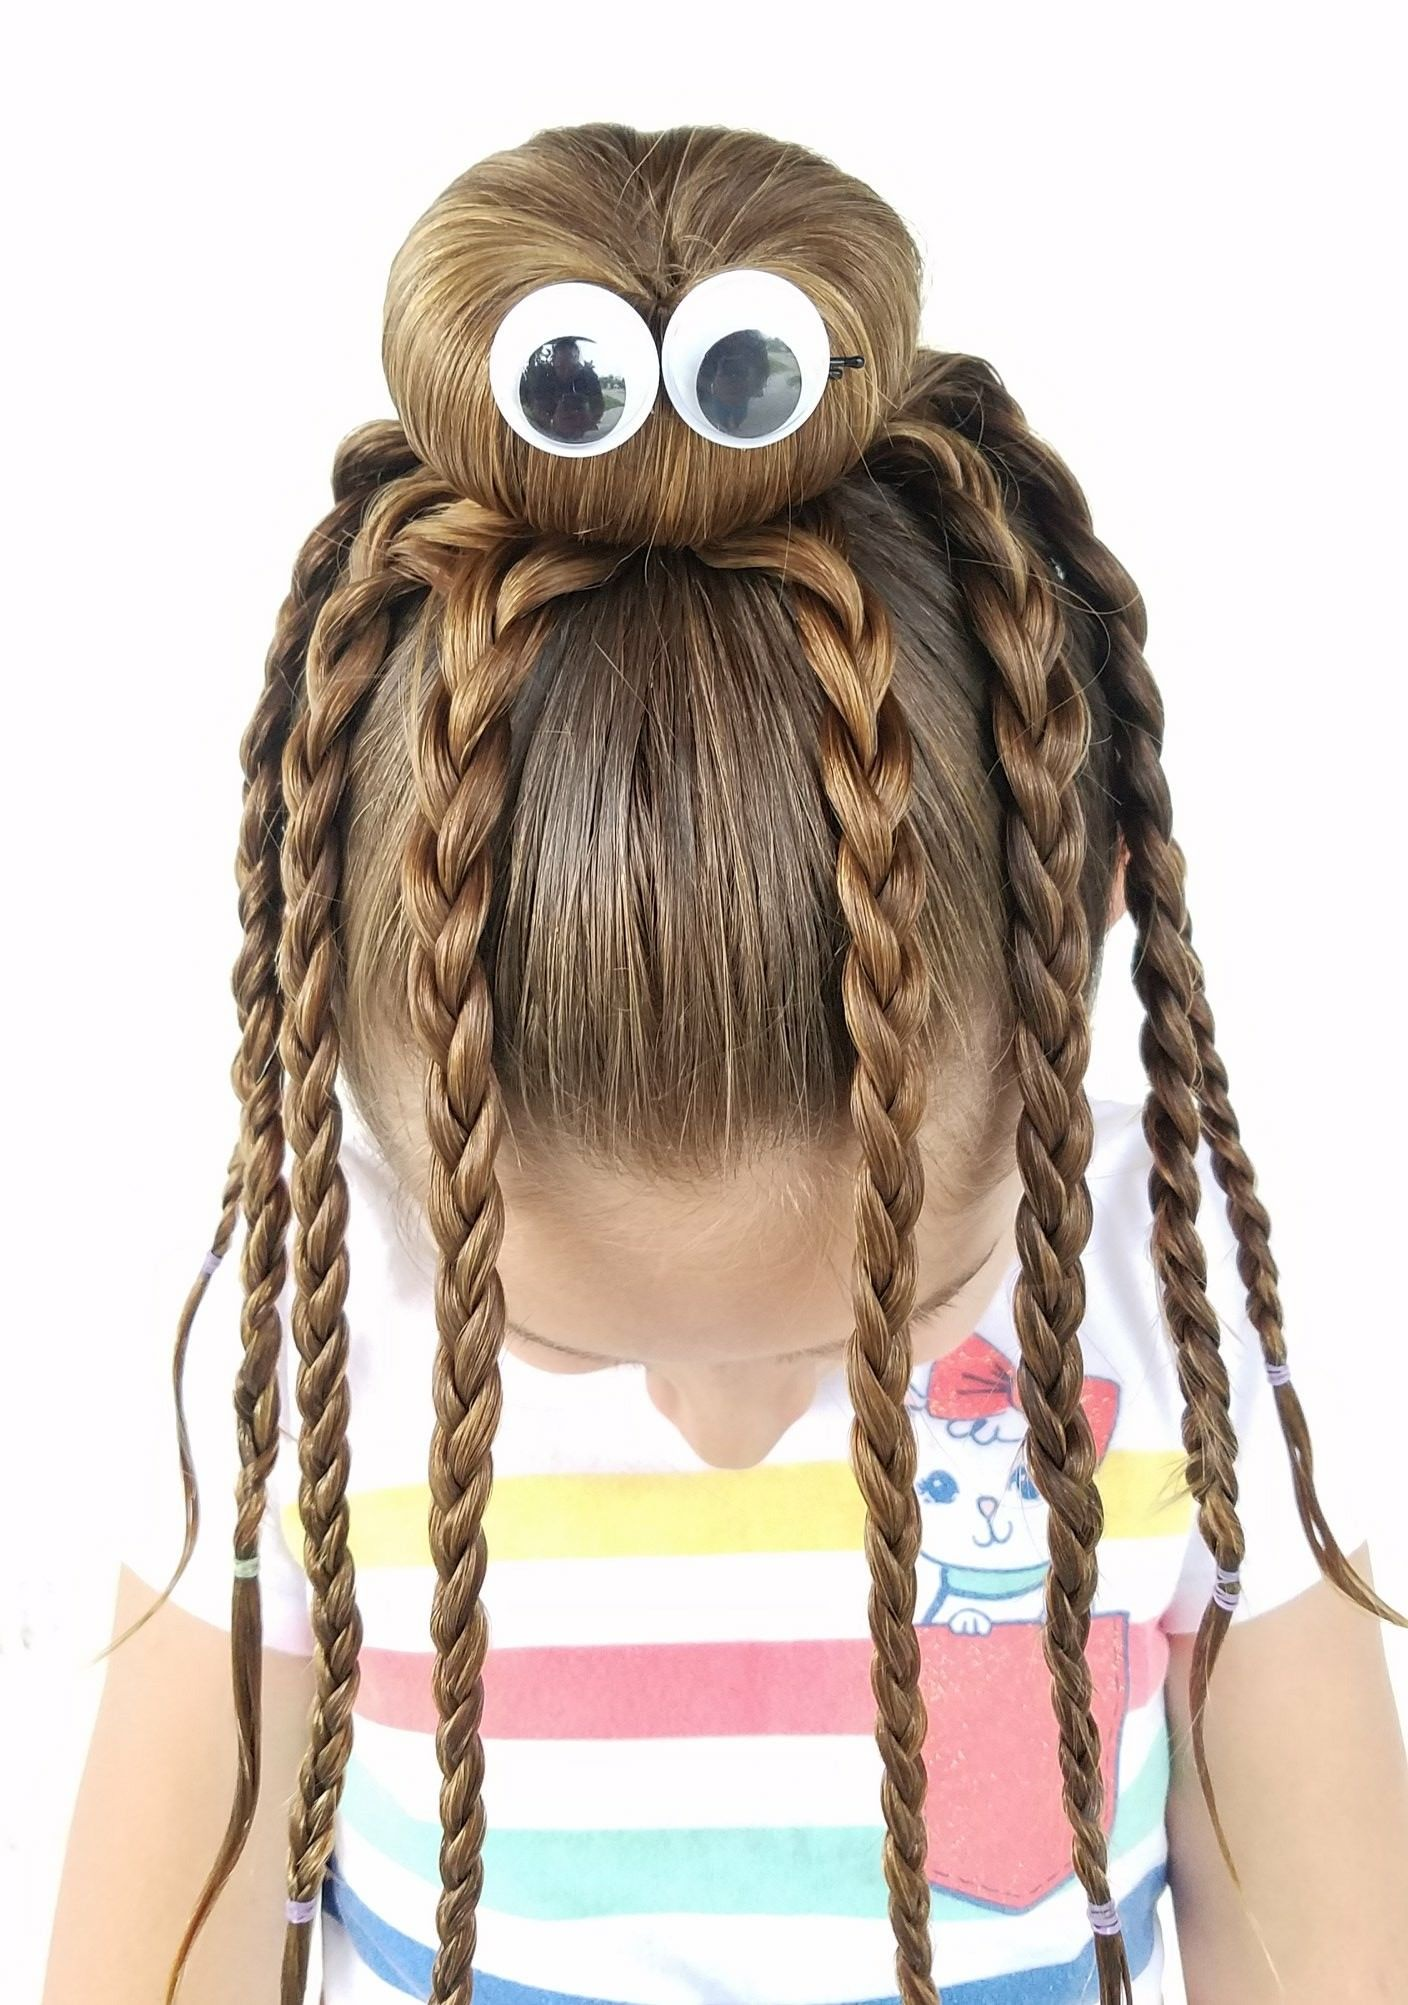 We Had Fun Creating This Octopus Bun Hairstyle With My Daughter - Hairstyle for valentine's dance